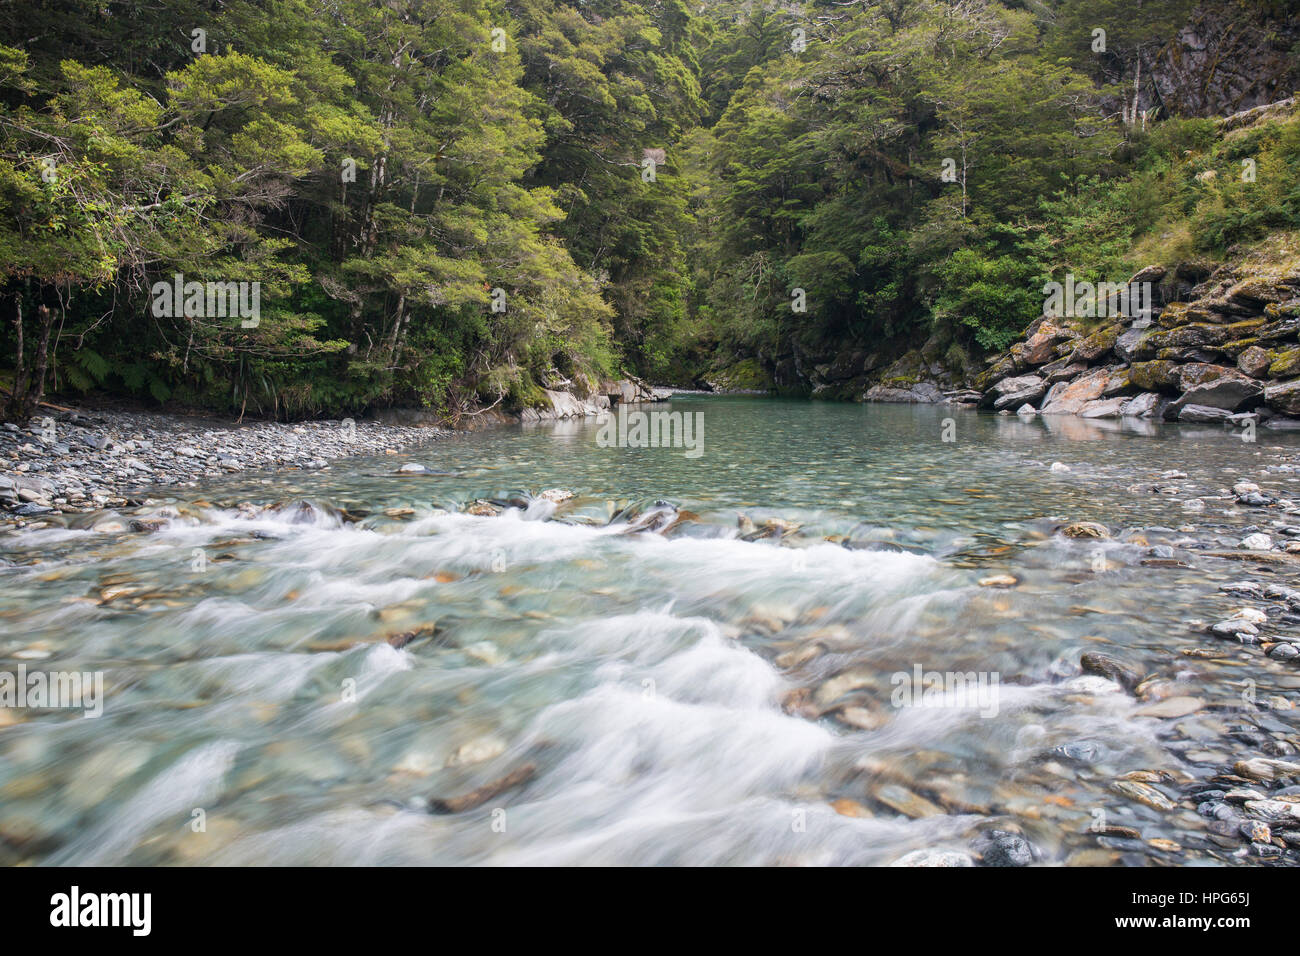 Haast Pass, Mount Aspiring National Park, West Coast, New Zealand. The Haast River near Fantail Falls. - Stock Image